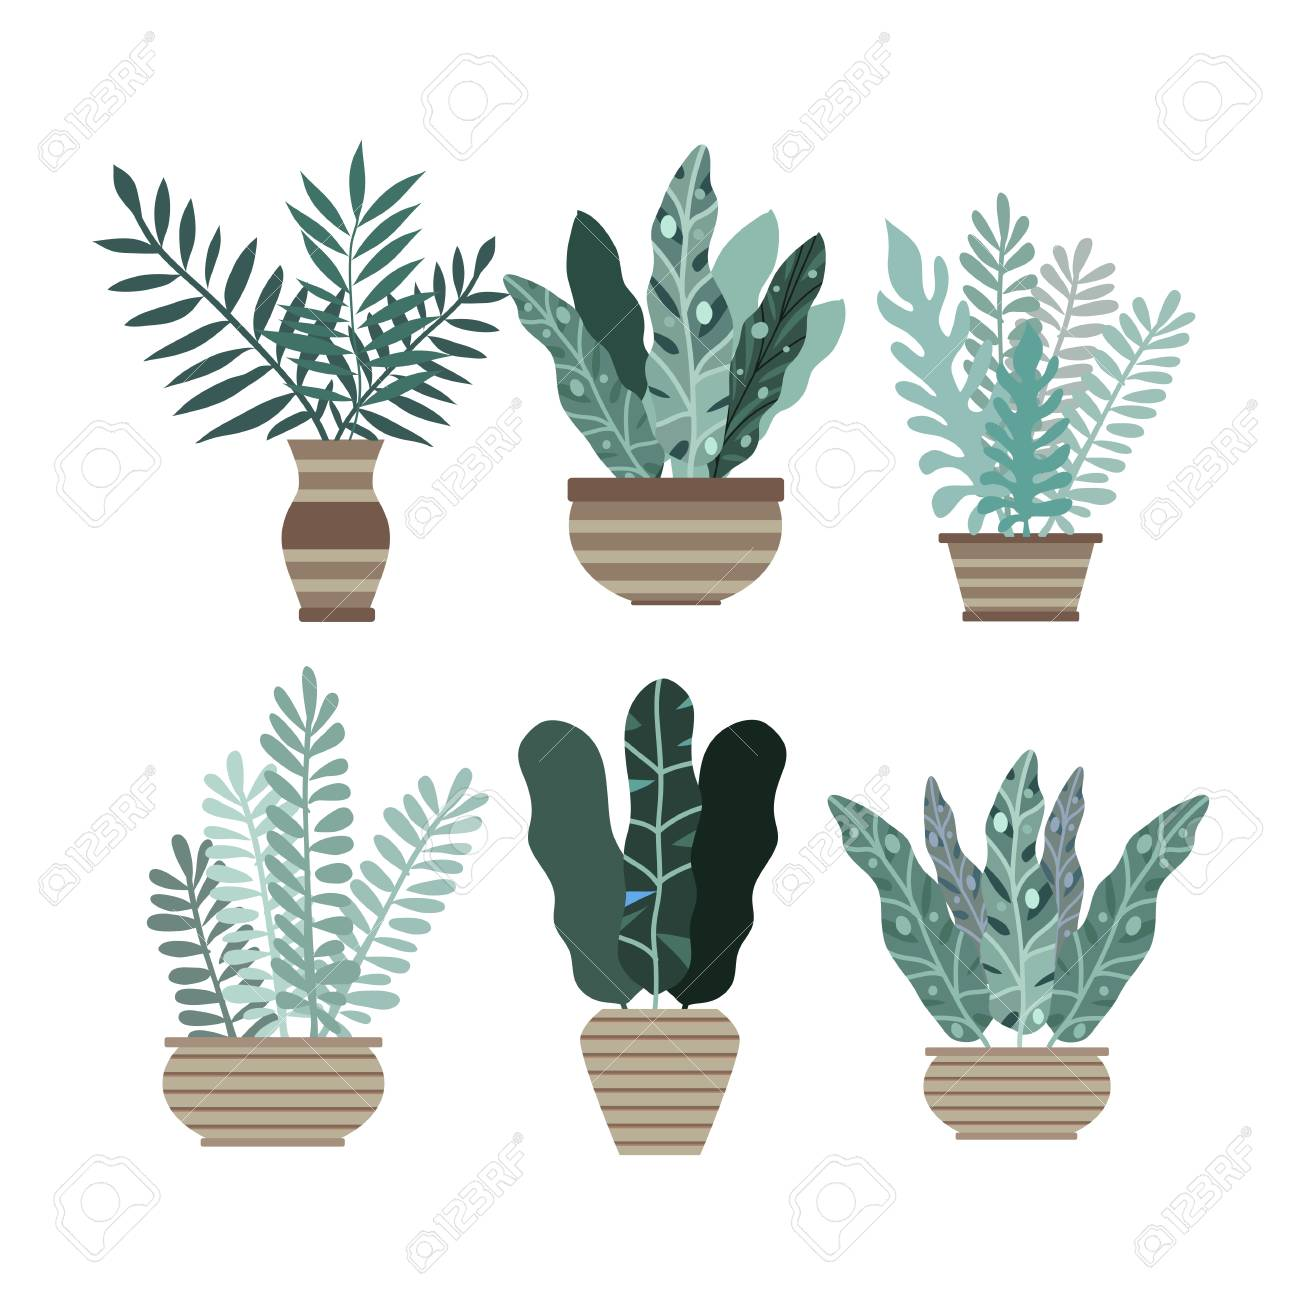 Tropical office plants Home Mr Price Home Room And Office Plants In Pots Cactus And Tropical Leaves Cute Vector Elements Tropical Plant Rentals Home Room And Office Plants In Pots Cactus And Tropical Leaves